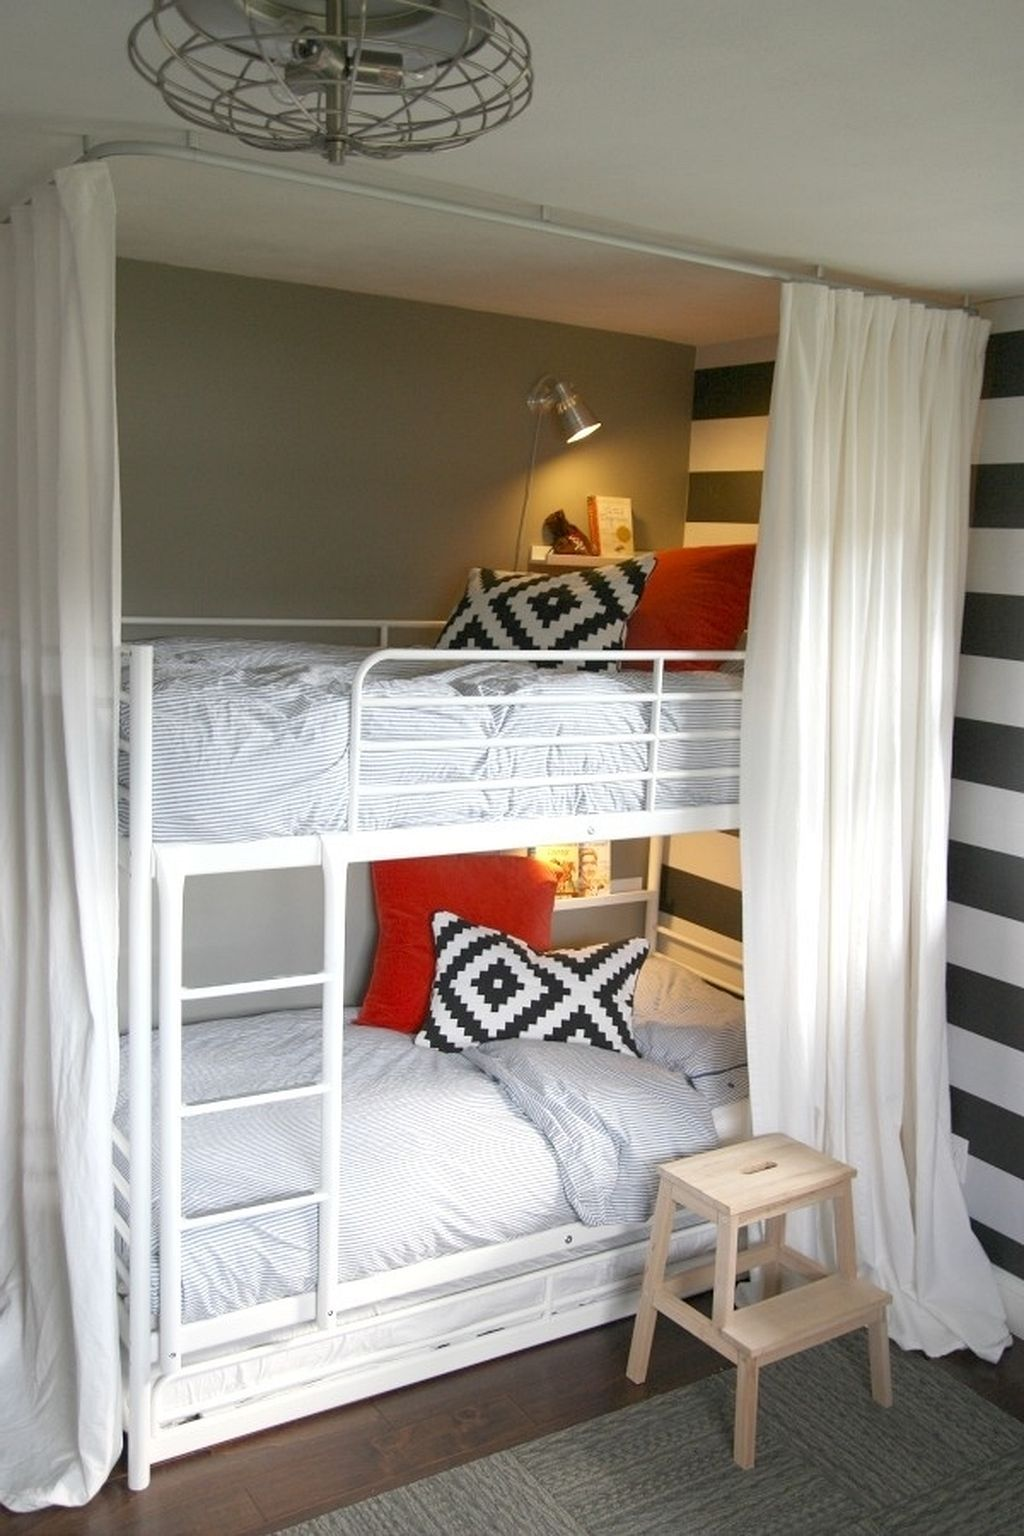 30 top tiny bedroom hacks to maximize your space tiny on wonderful ideas of bunk beds for your kids bedroom id=67010